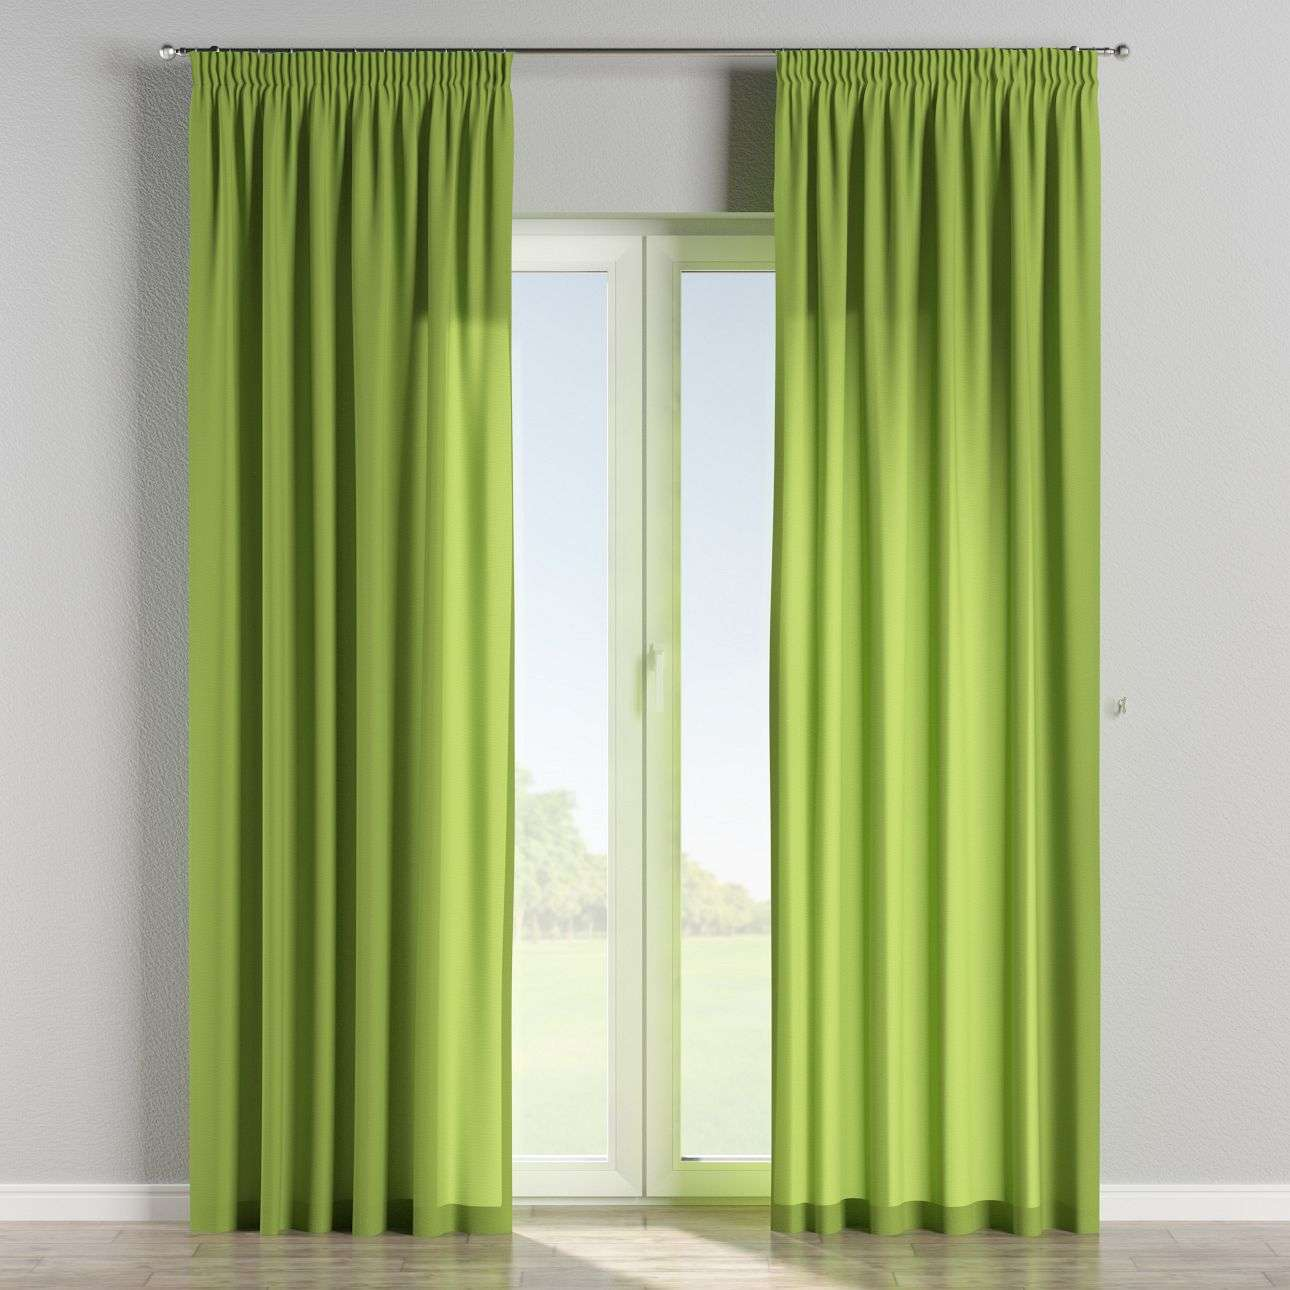 Pencil pleat curtains 130 x 260 cm (51 x 102 inch) in collection Quadro, fabric: 136-37